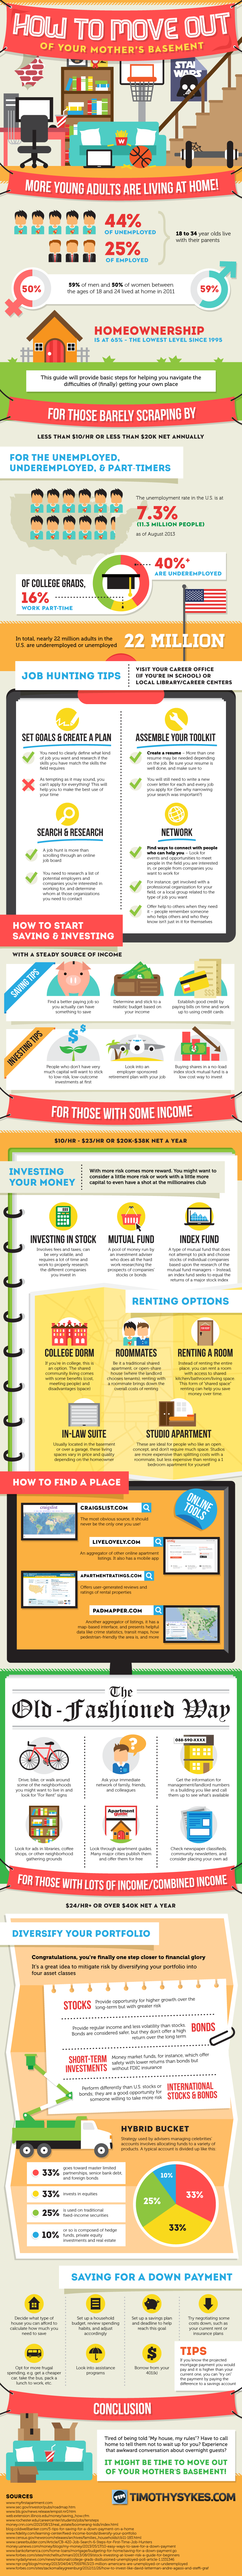 Infographic: How To Move Out Of Your Mother's Basement